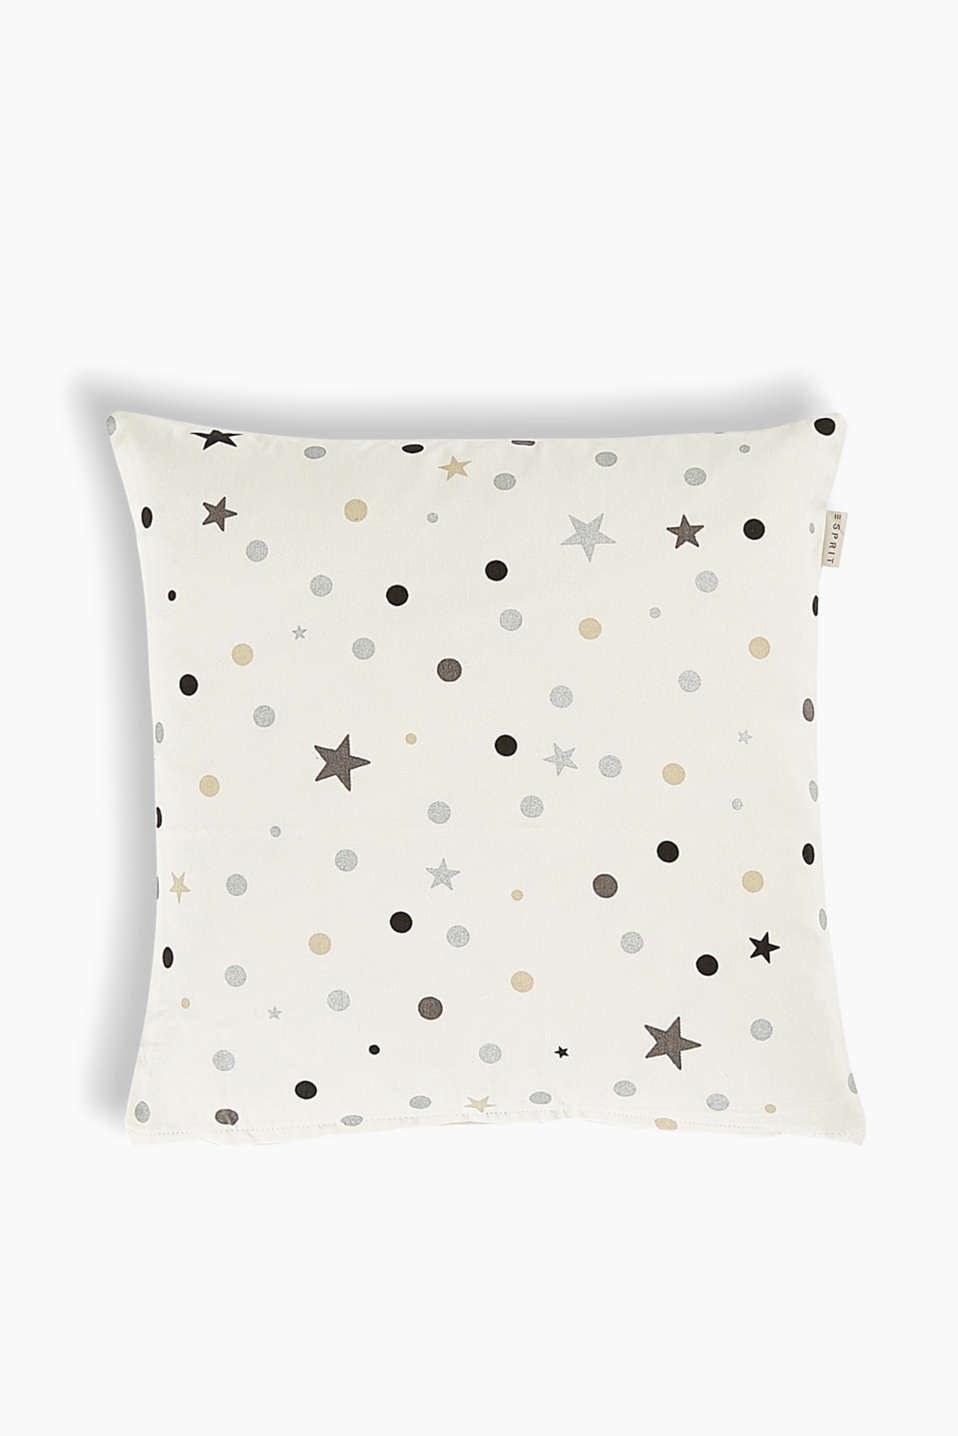 A stylish head-turner in your home décor thanks to the metallic stars and polka dots.